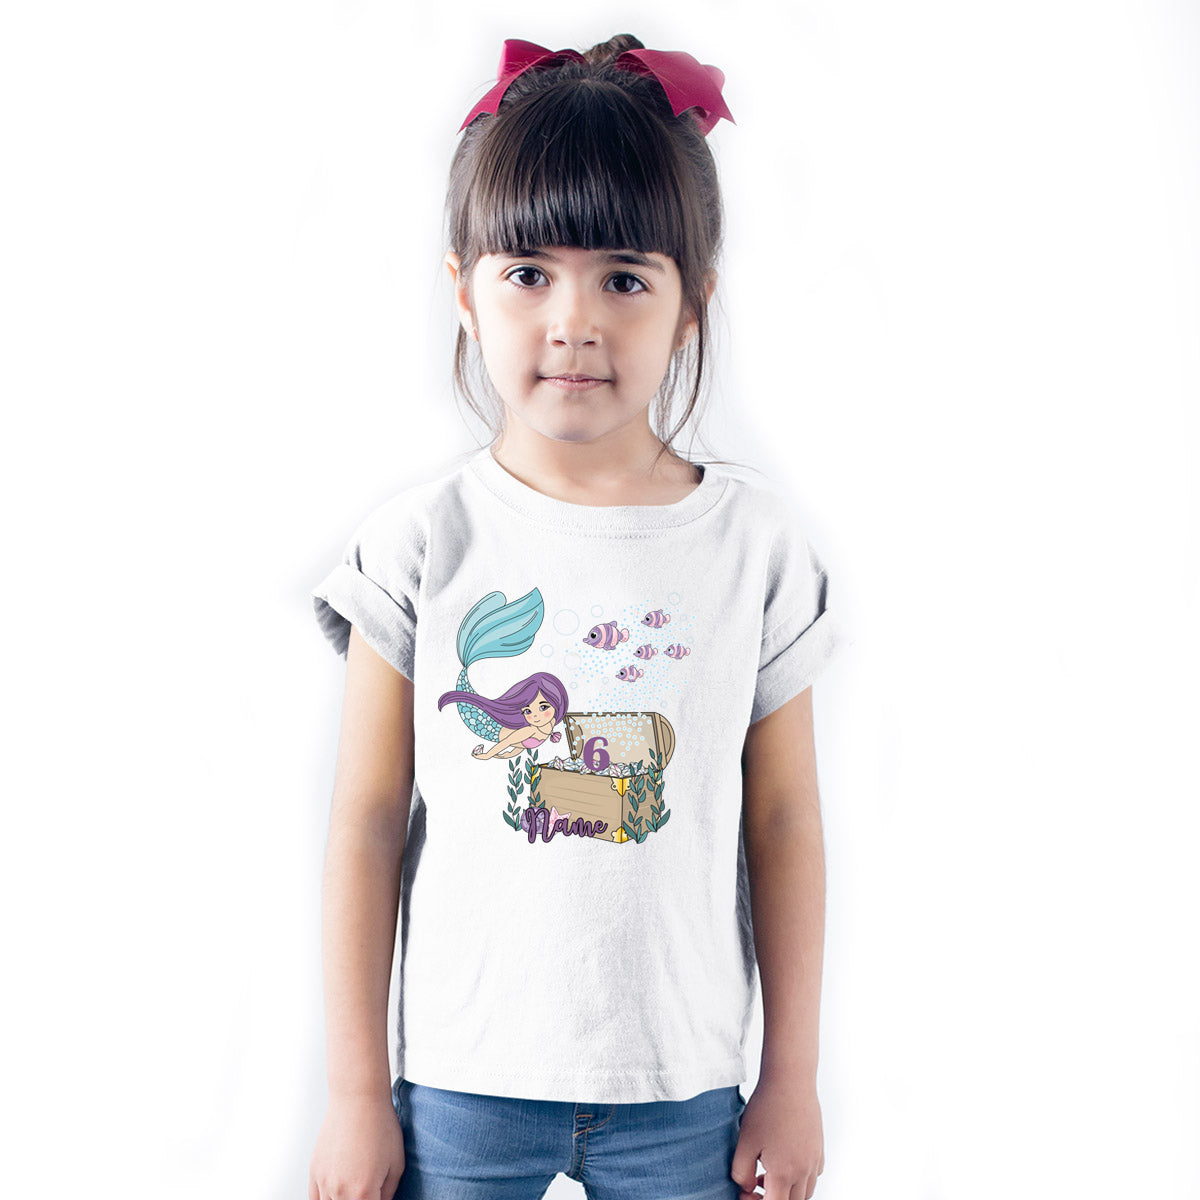 Sprinklecart Customized Cute Mermaid 6th Birthday Poly-Cotton Kids T Shirt Wear (White)